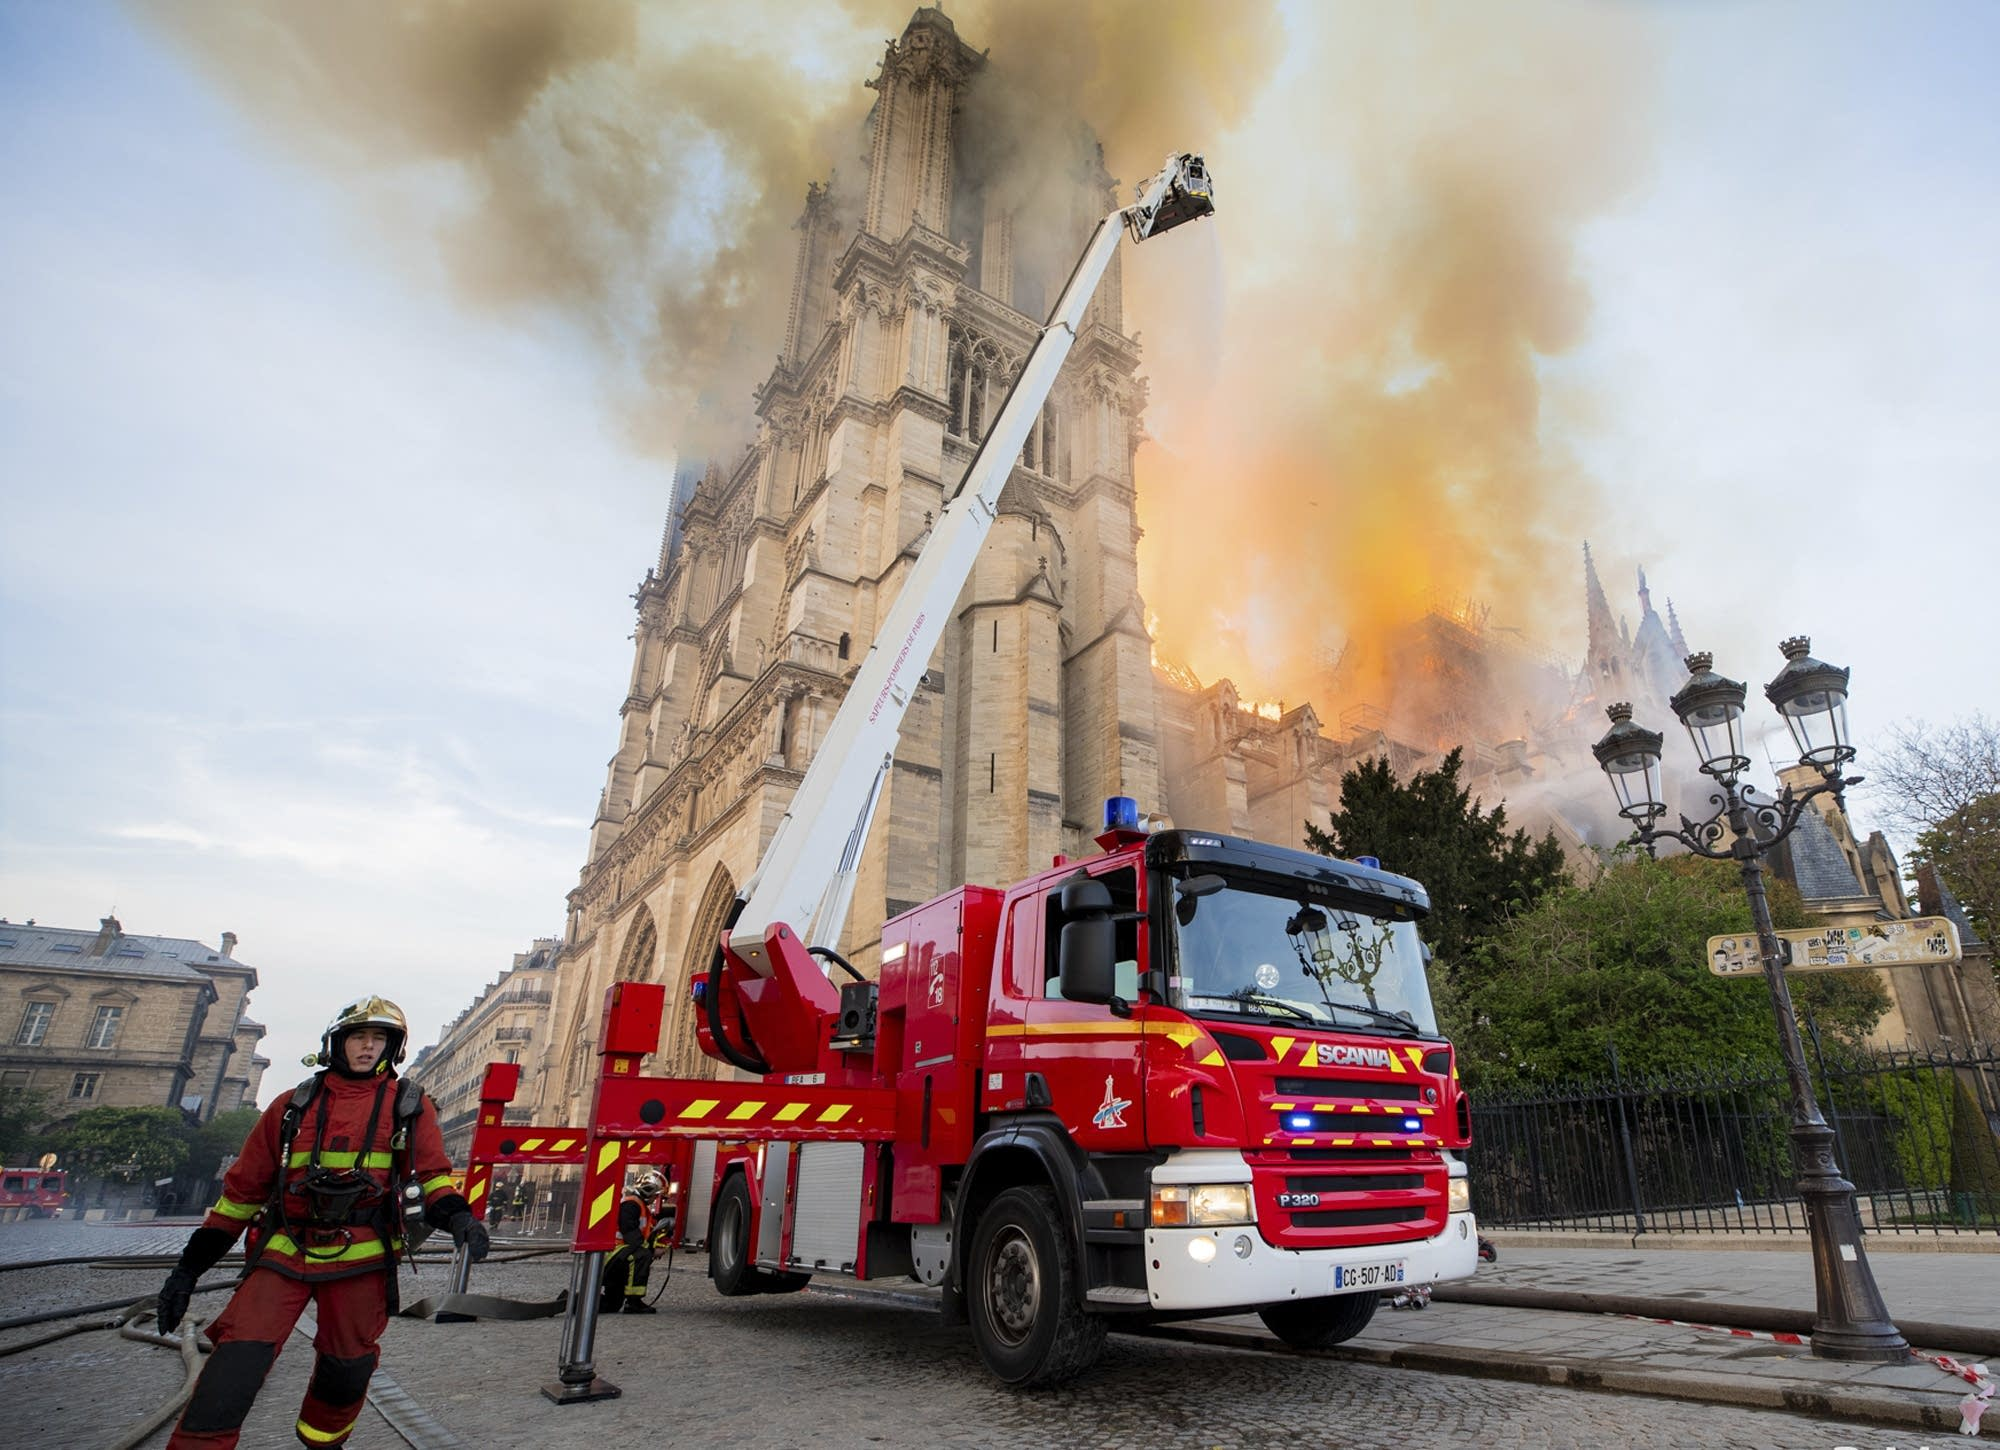 Firefighters work at the burning Notre Dame cathedral.